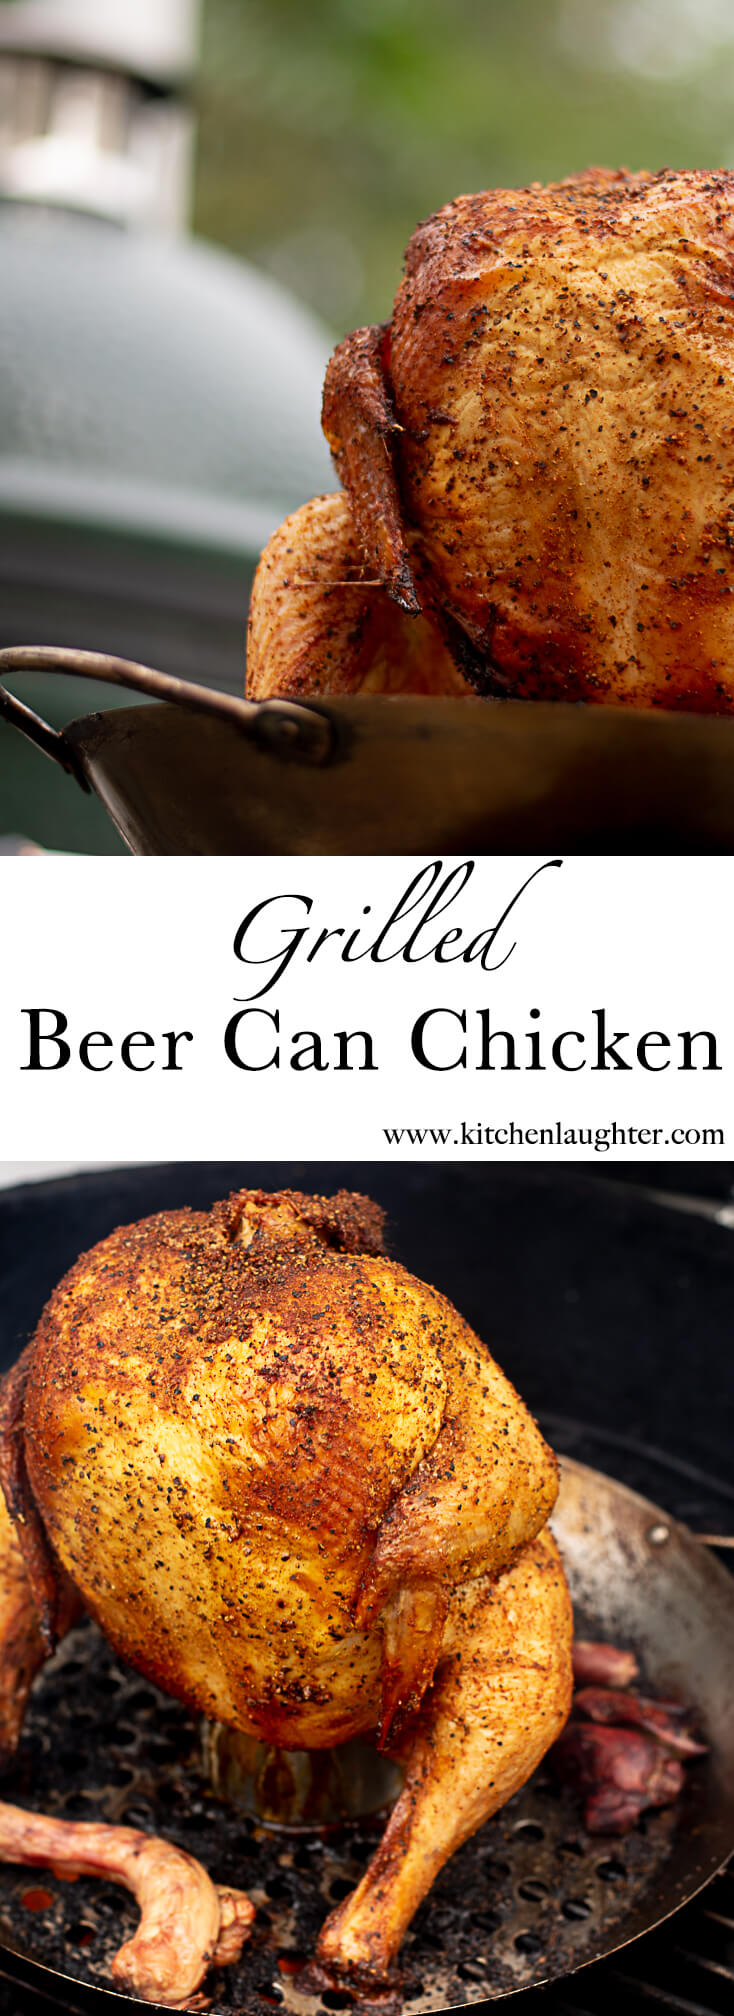 Grilled Beer Can Chicken on the Big Green Egg #Grill #Chicken #BeerCanChicken #BGE #BigGreenEgg #Beer